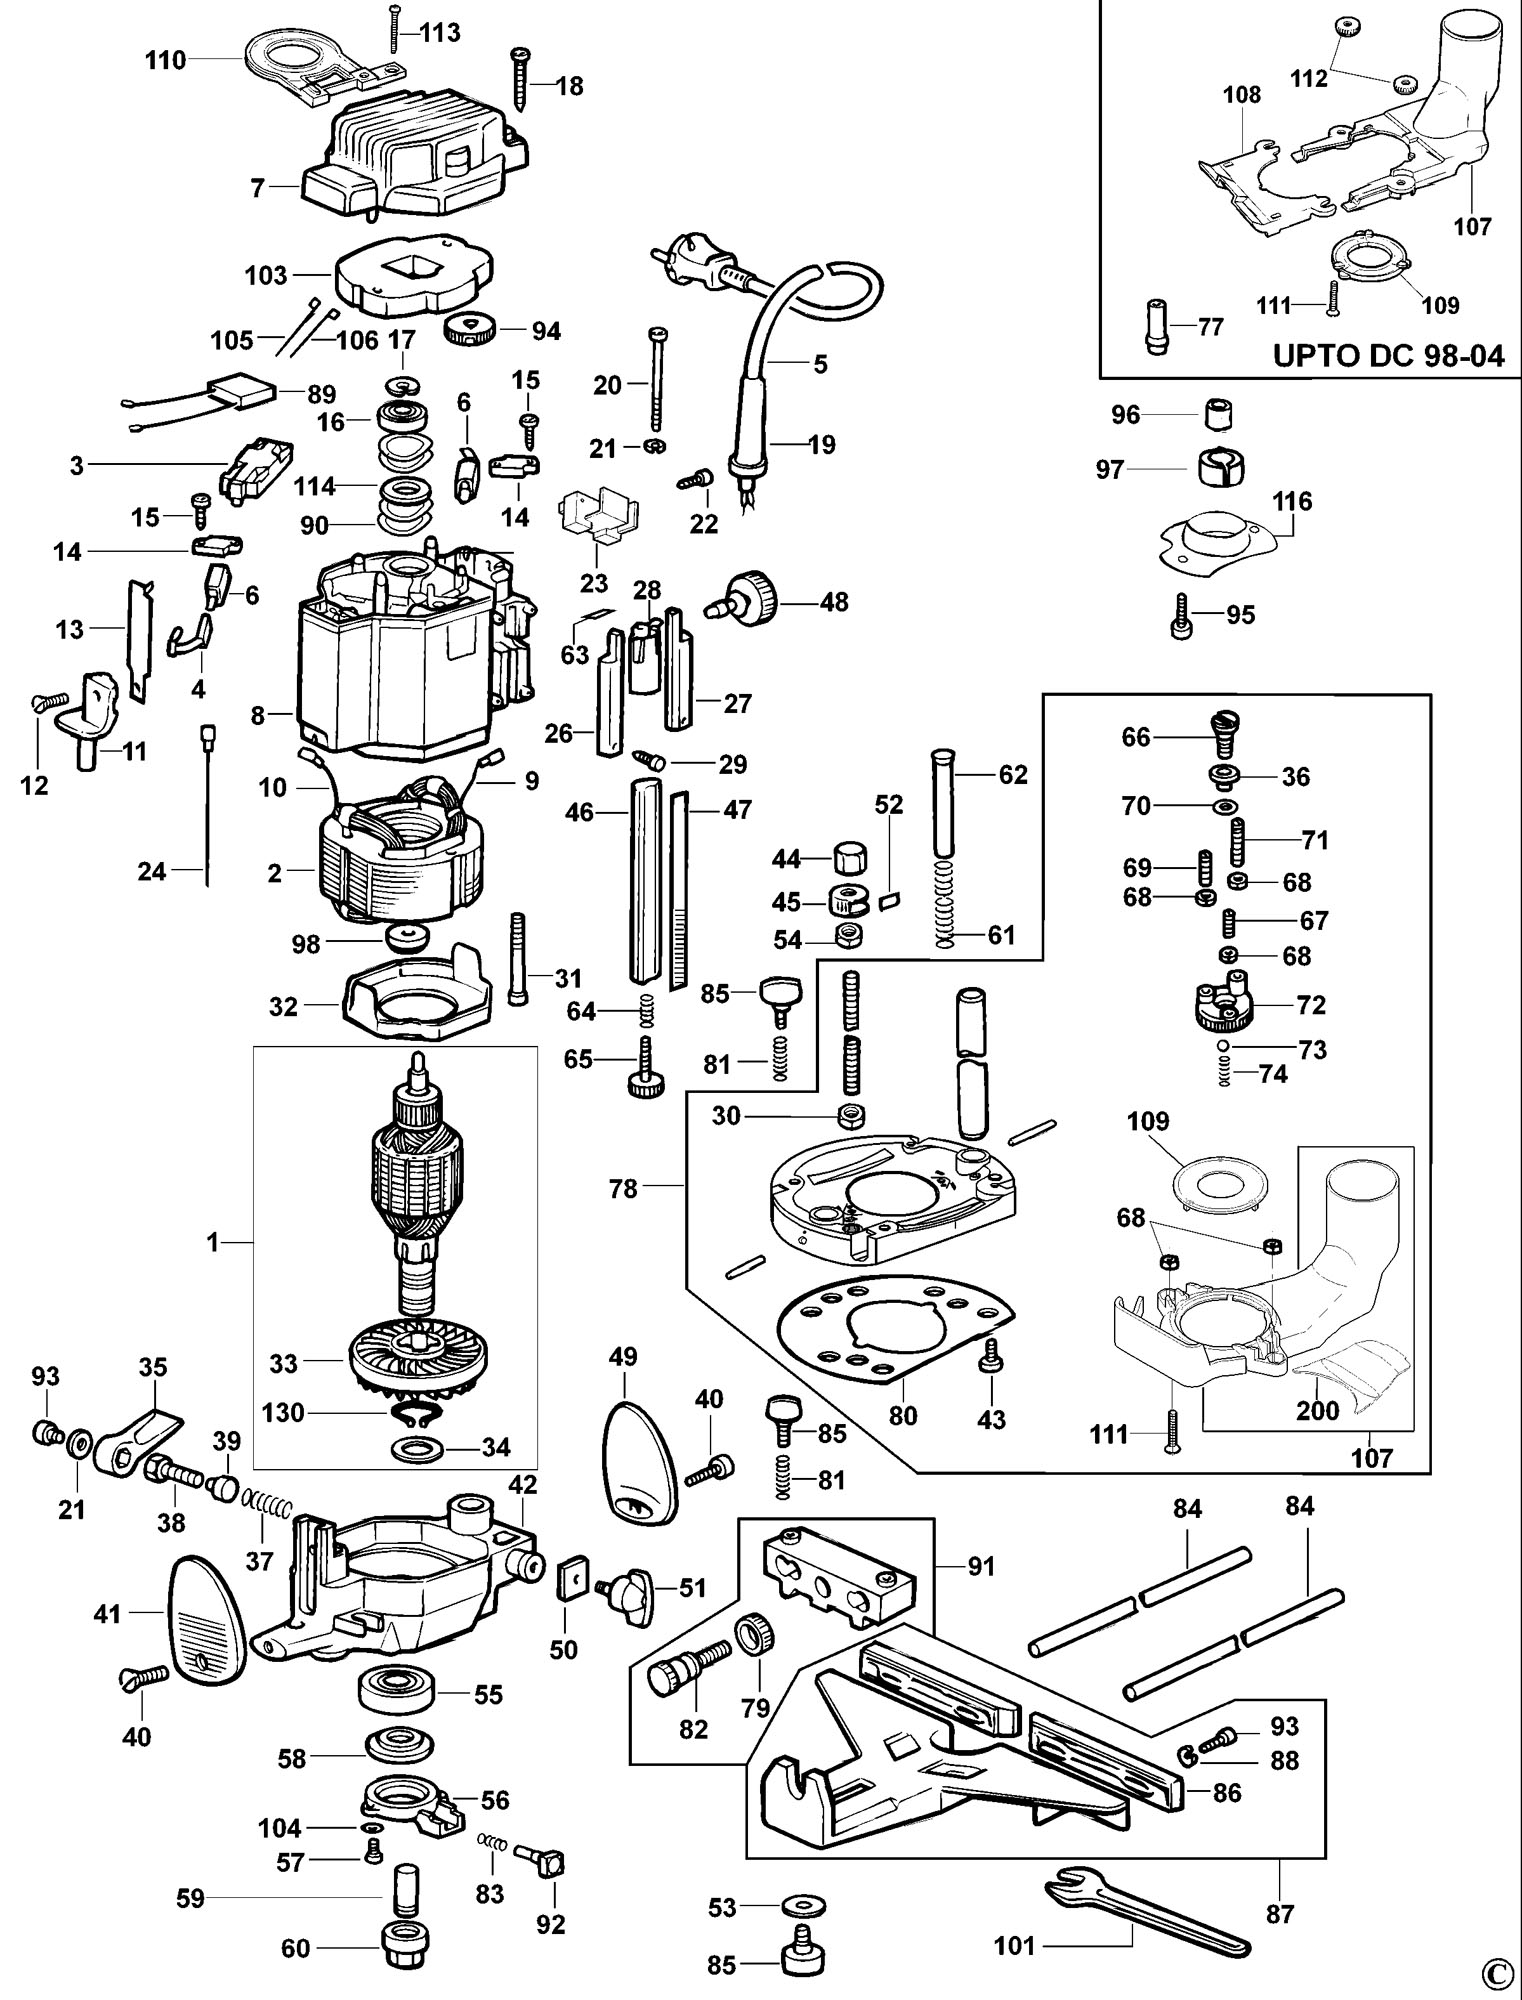 Dewalt D55146 Power Cord Wiring Diagram